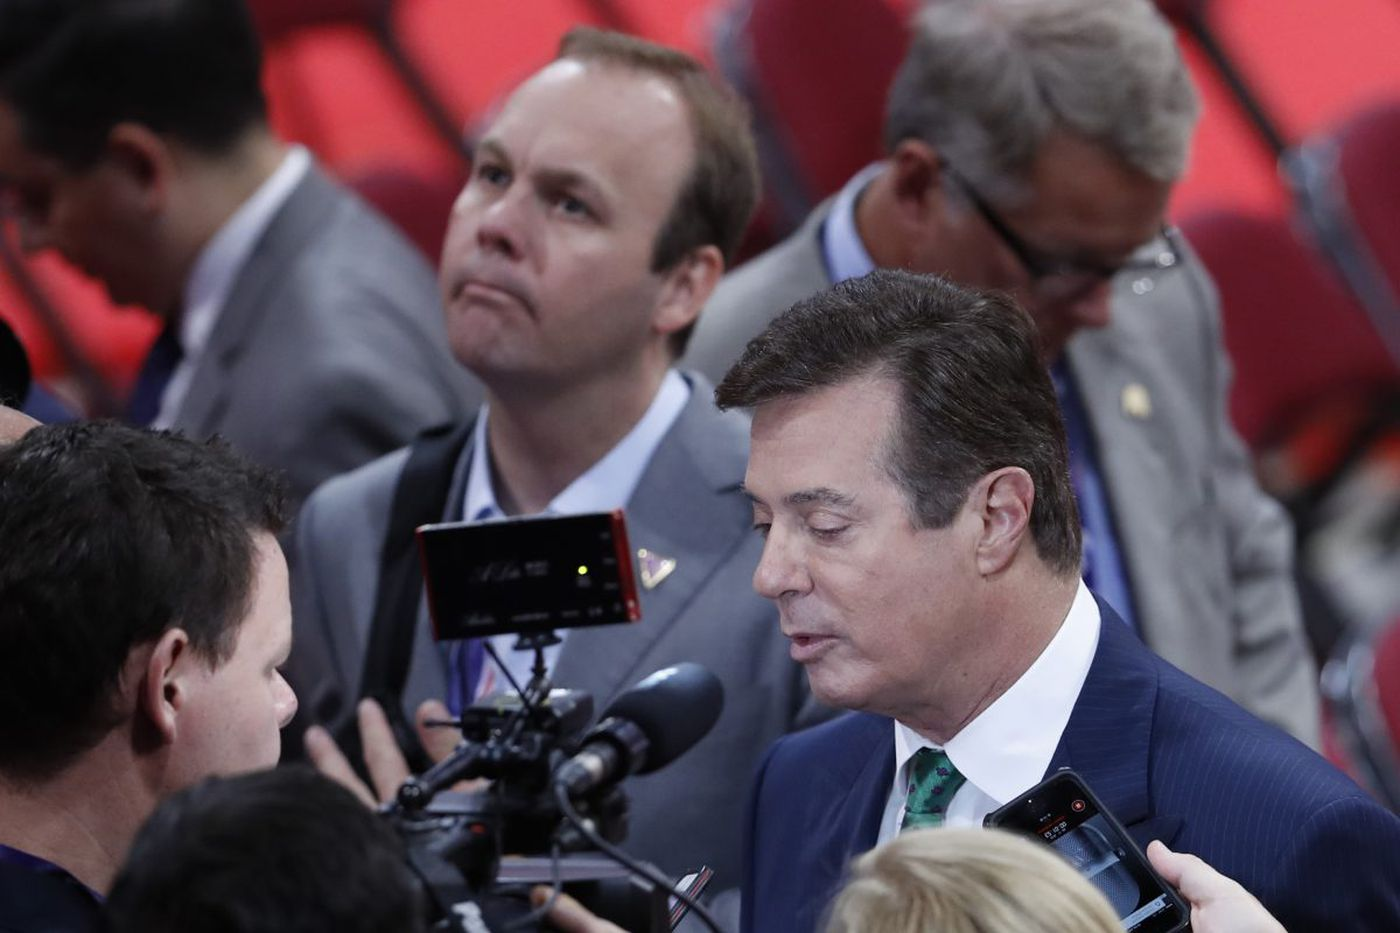 Manafort indictment can't be separated from Trump | Trudy Rubin